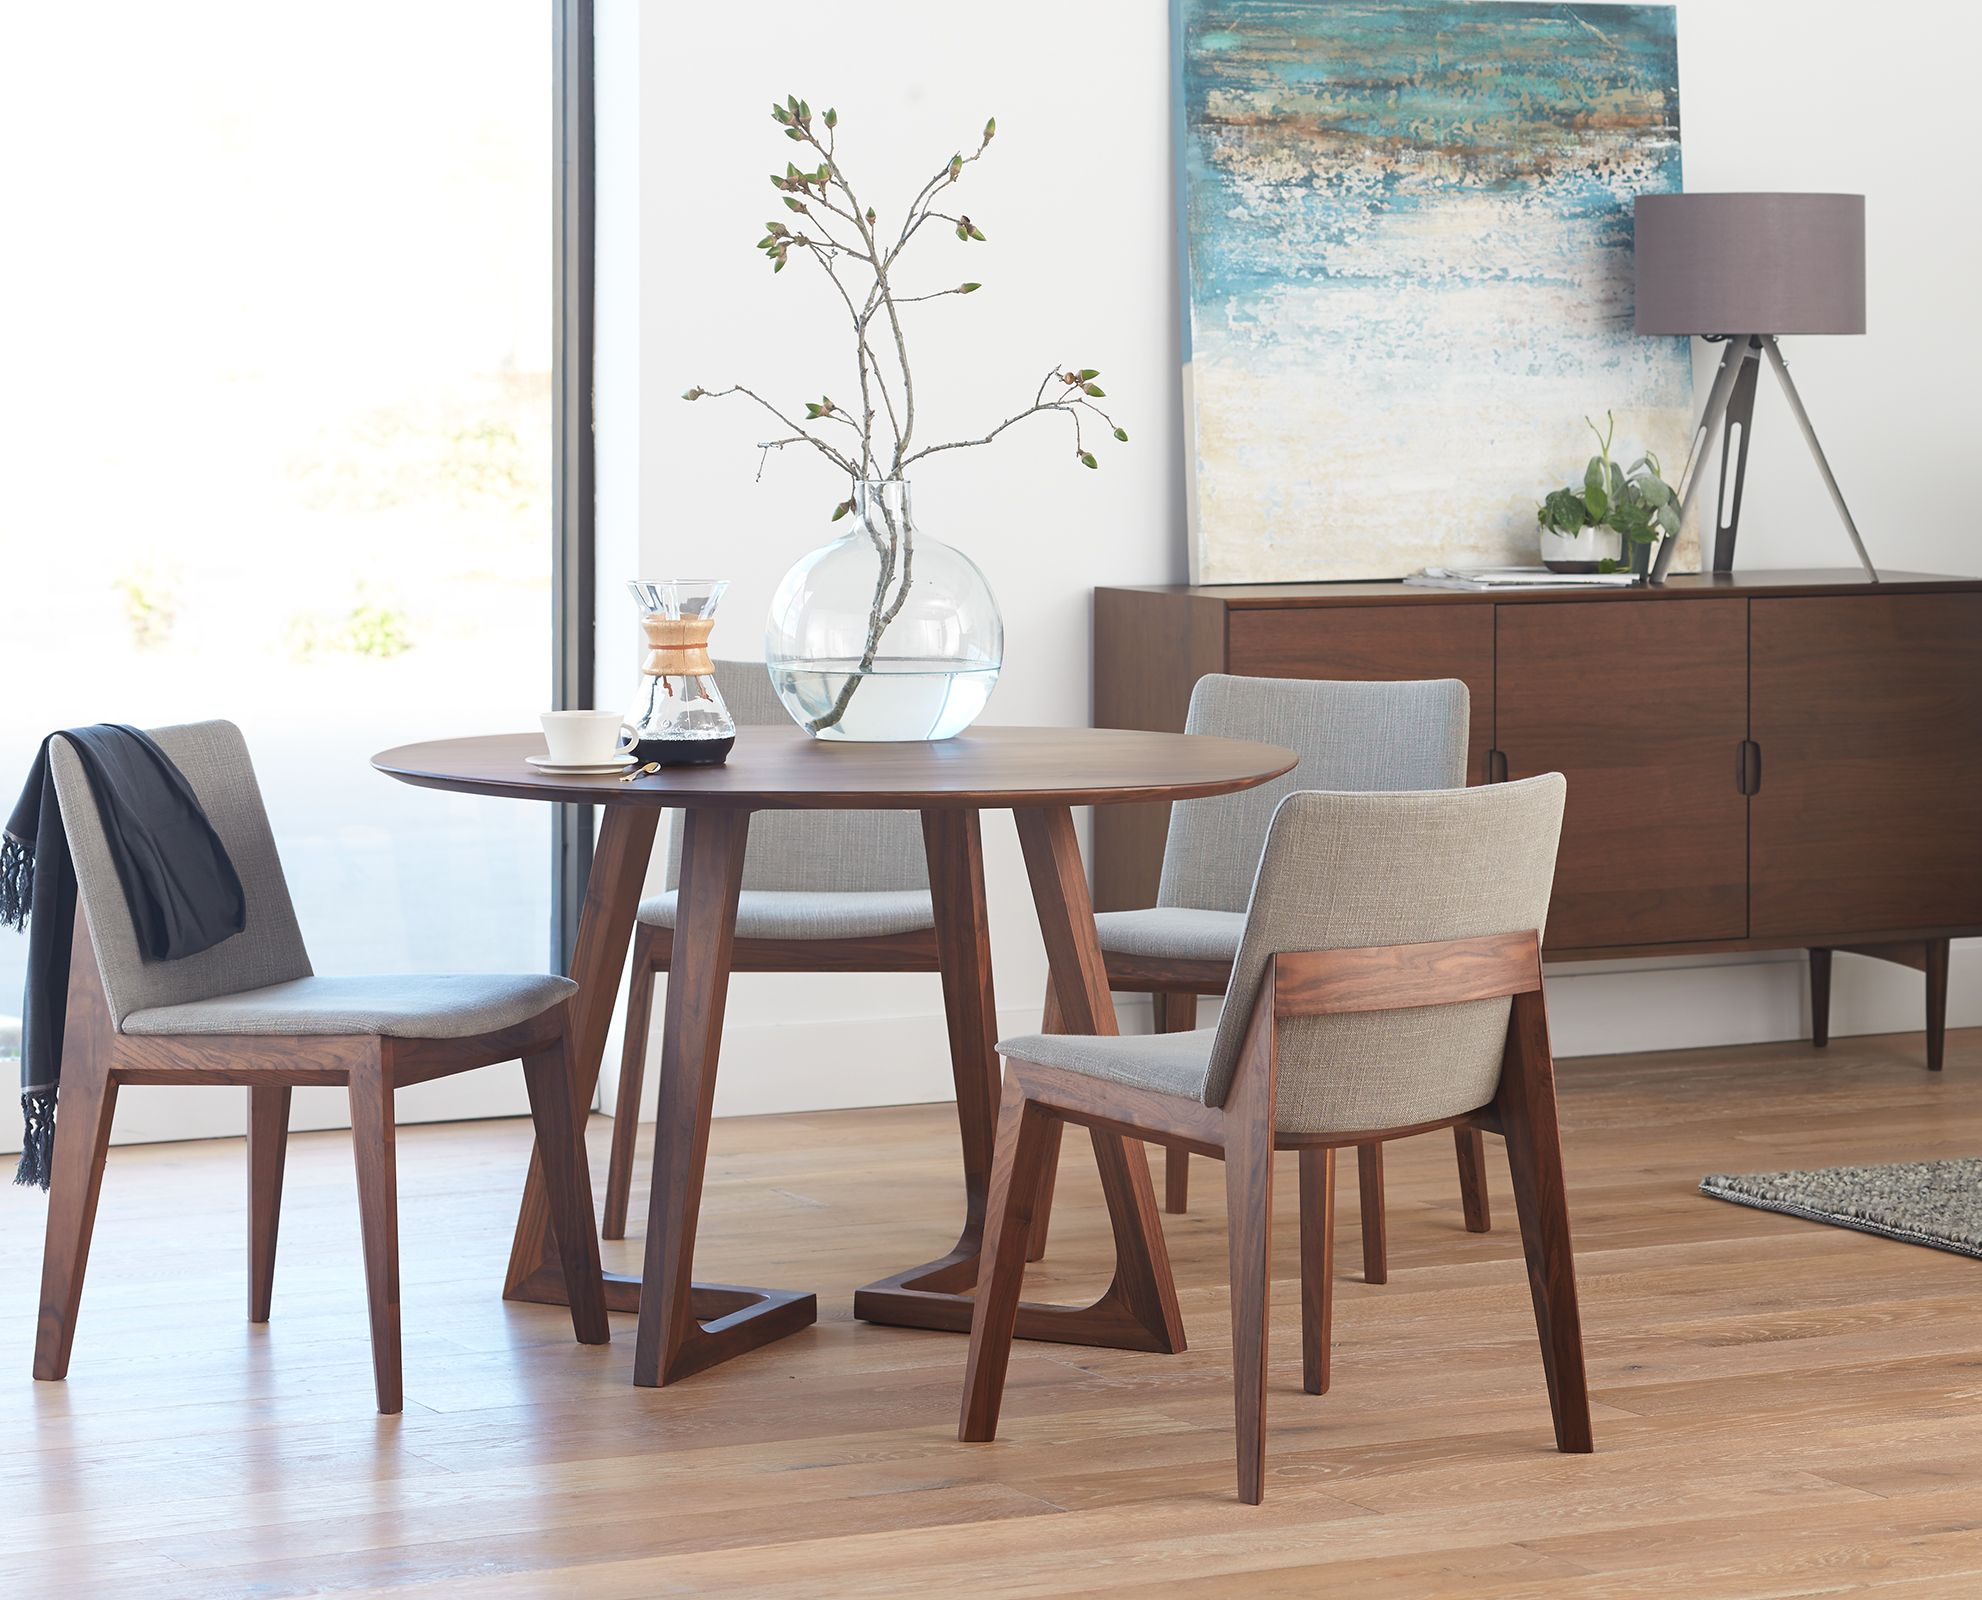 Scandinavian Dining Room Furniture